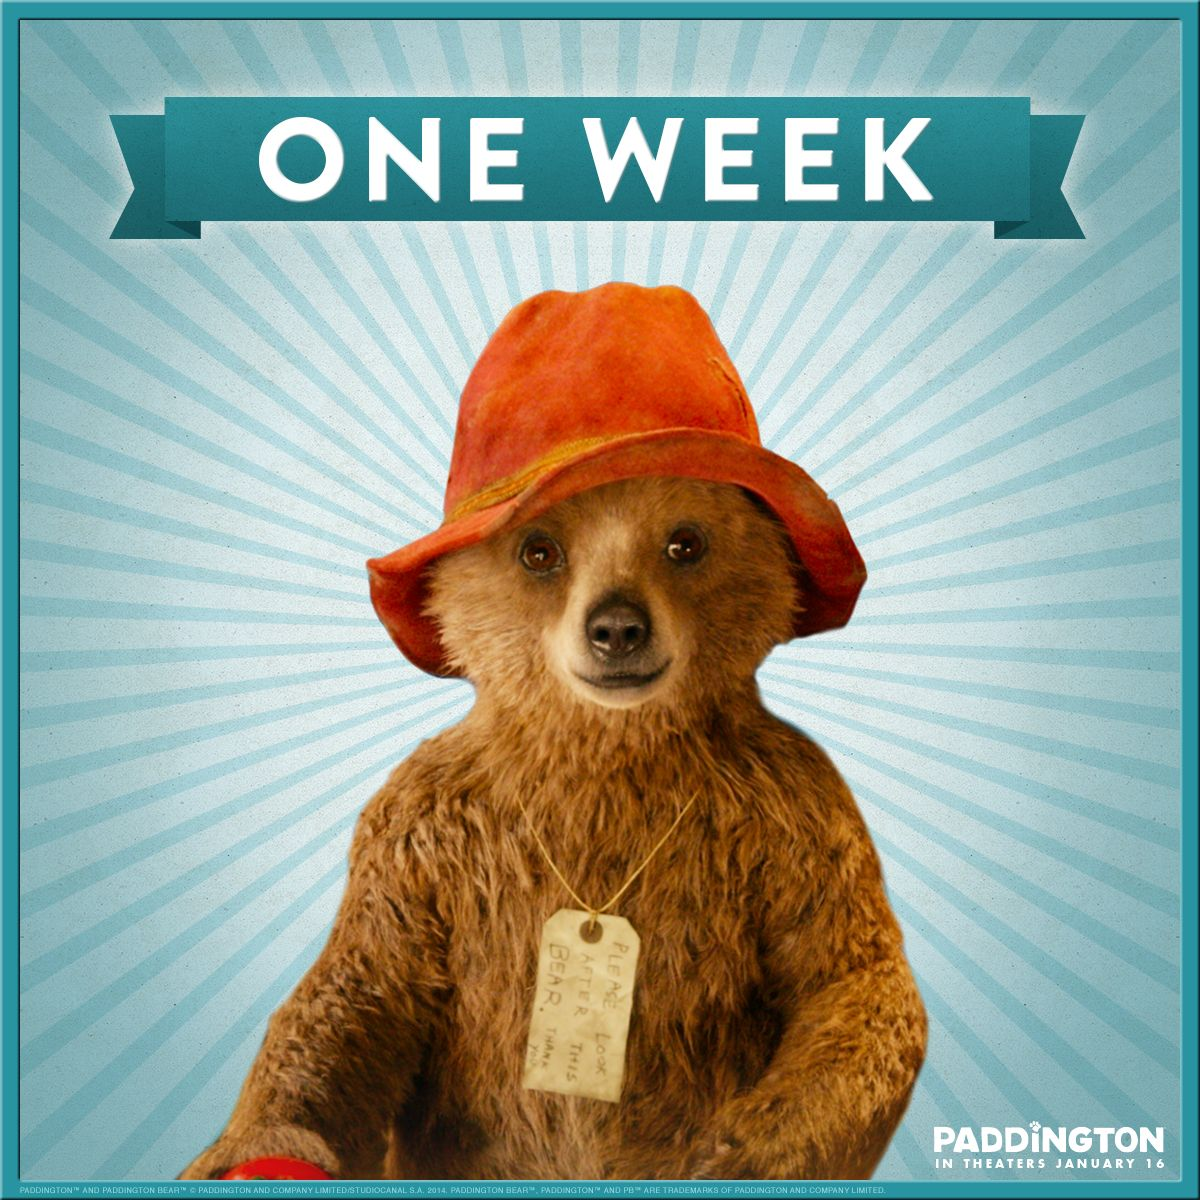 In One Week A Little Bear Is Going To Make A Big Splash Paddington